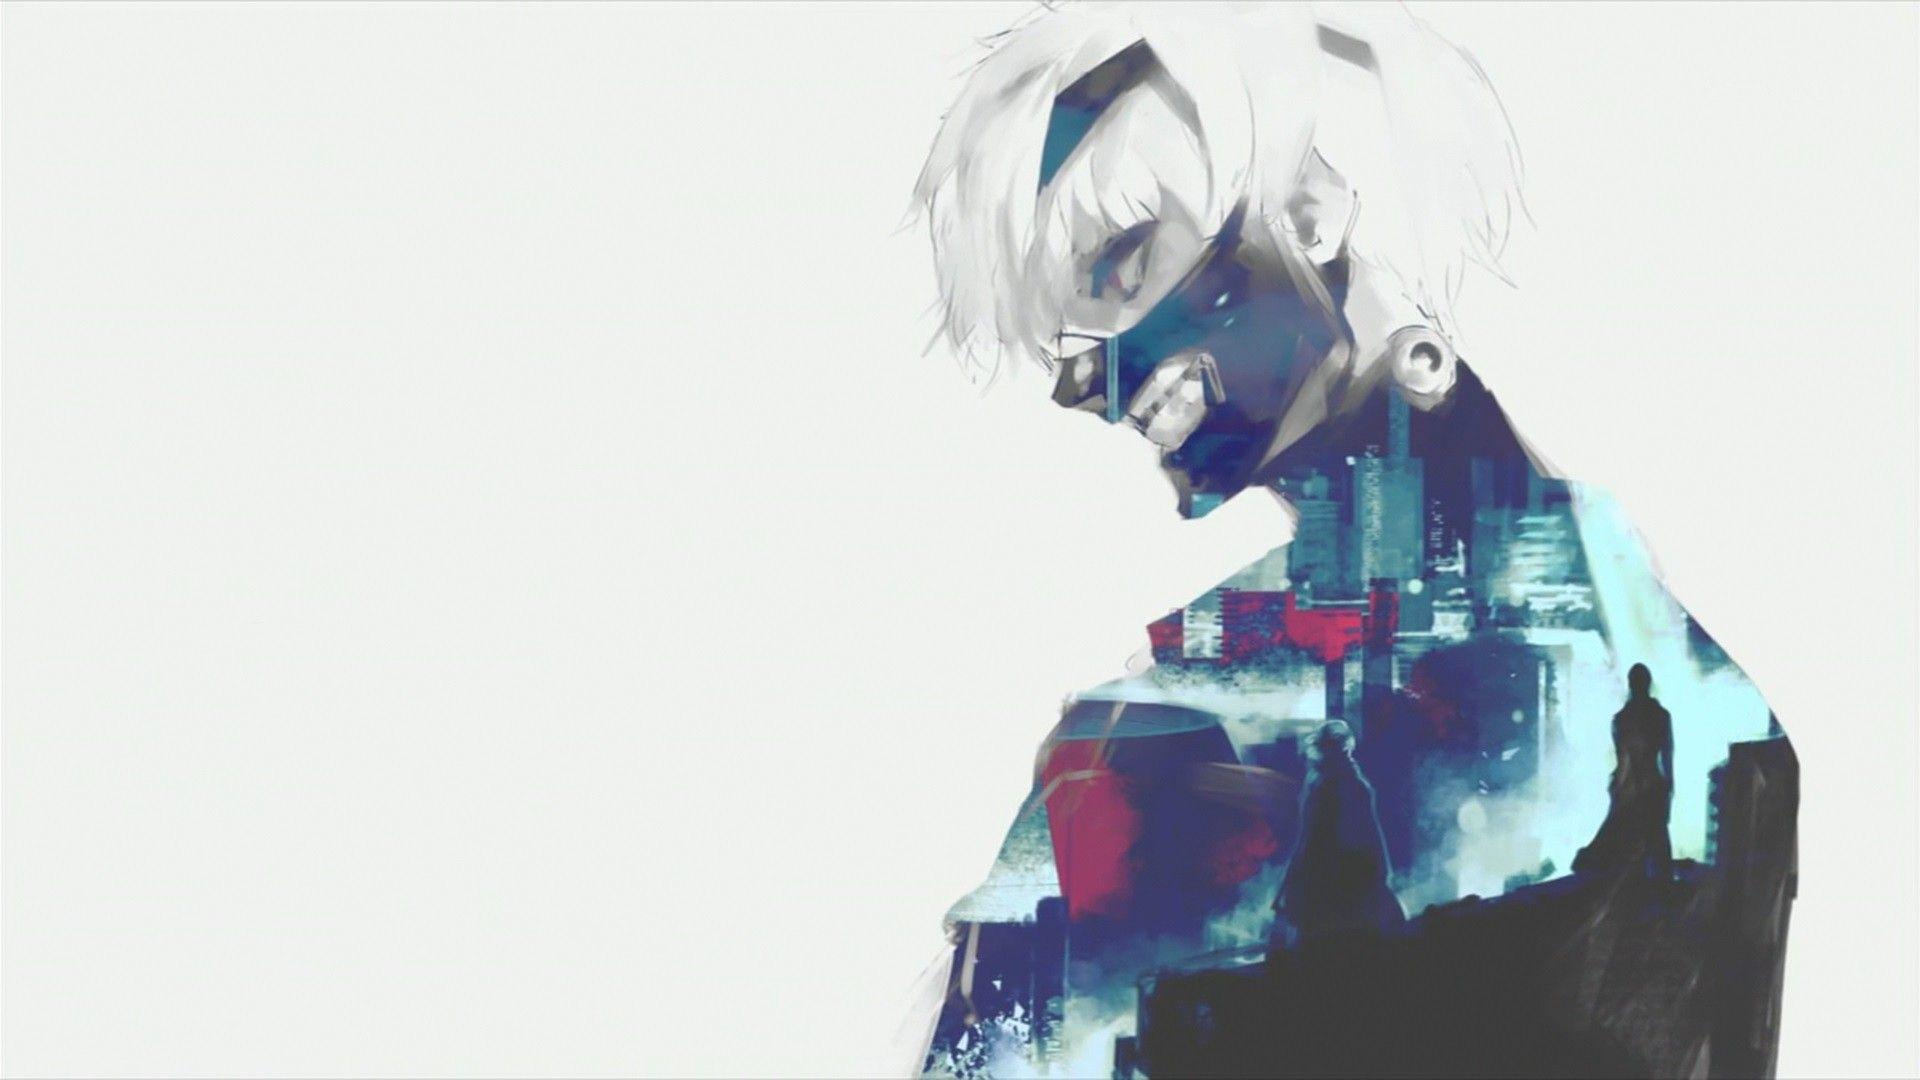 This app is made to be simple and easy to operate. Tokyo Ghoul 4K Wallpapers - Wallpaper Cave